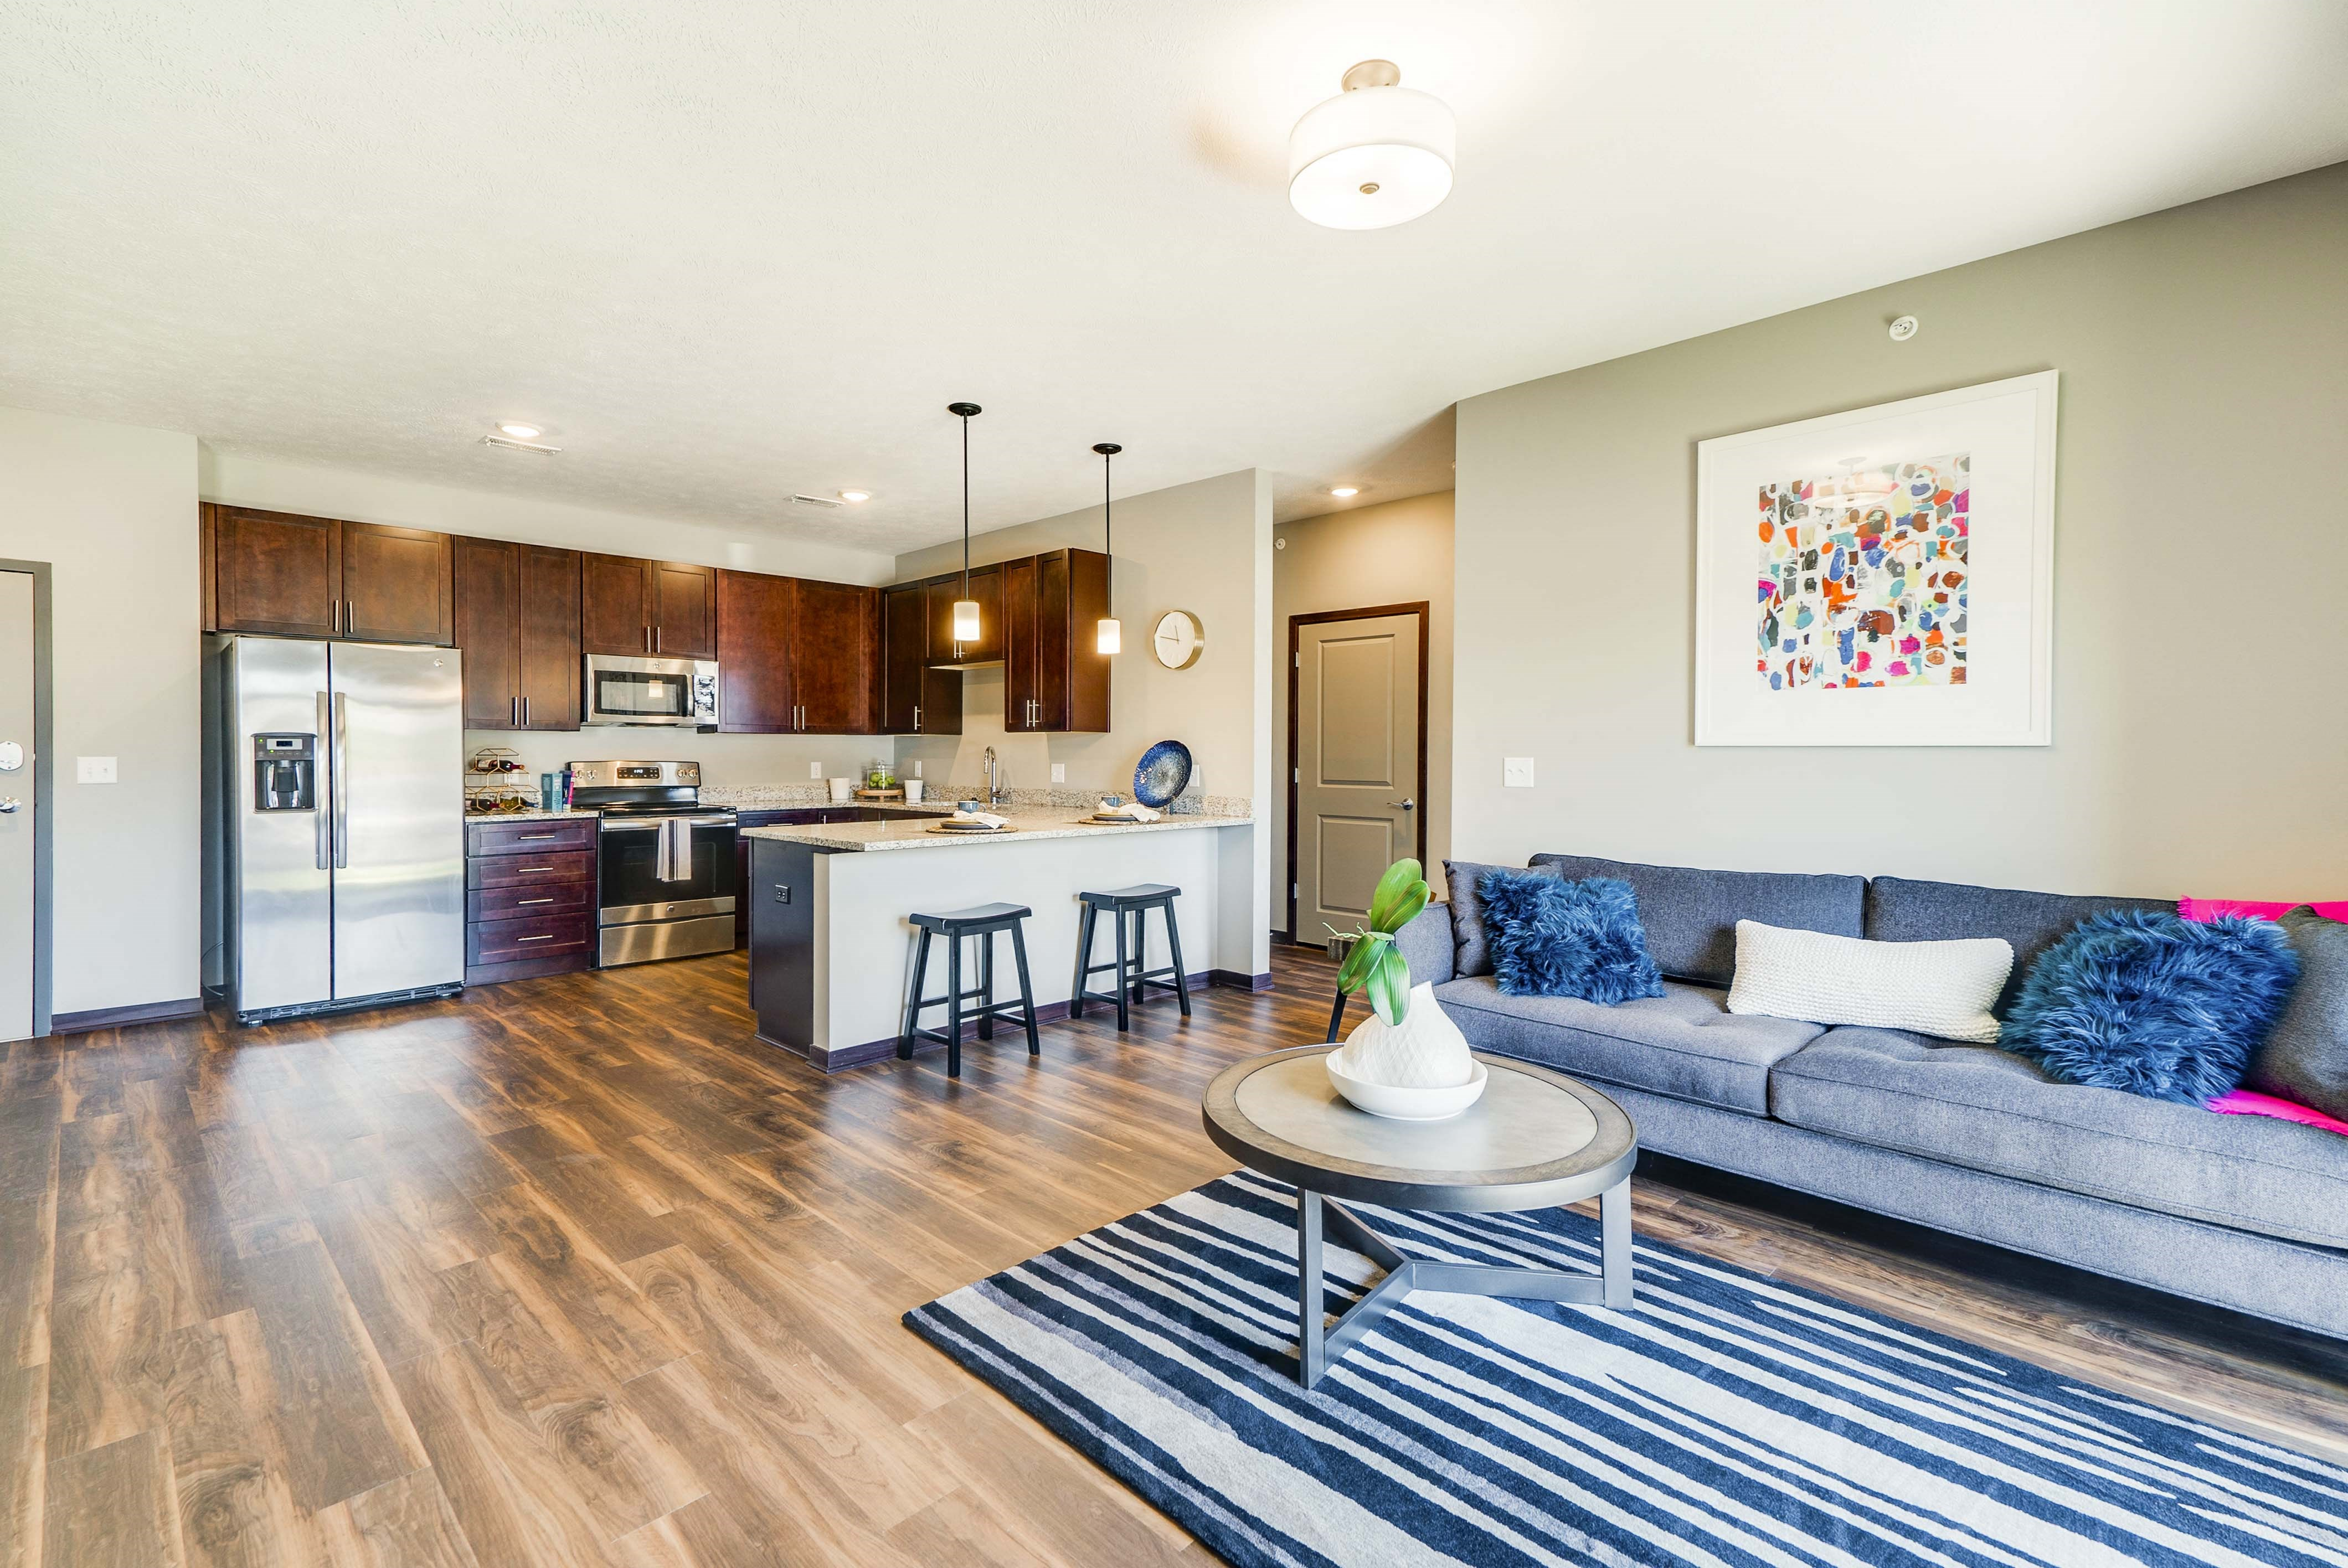 Spacious kitchen and living space in a 2 bedroom apartment for rent at 360 at Jordan West best new apartments West Des Moines IA 50266